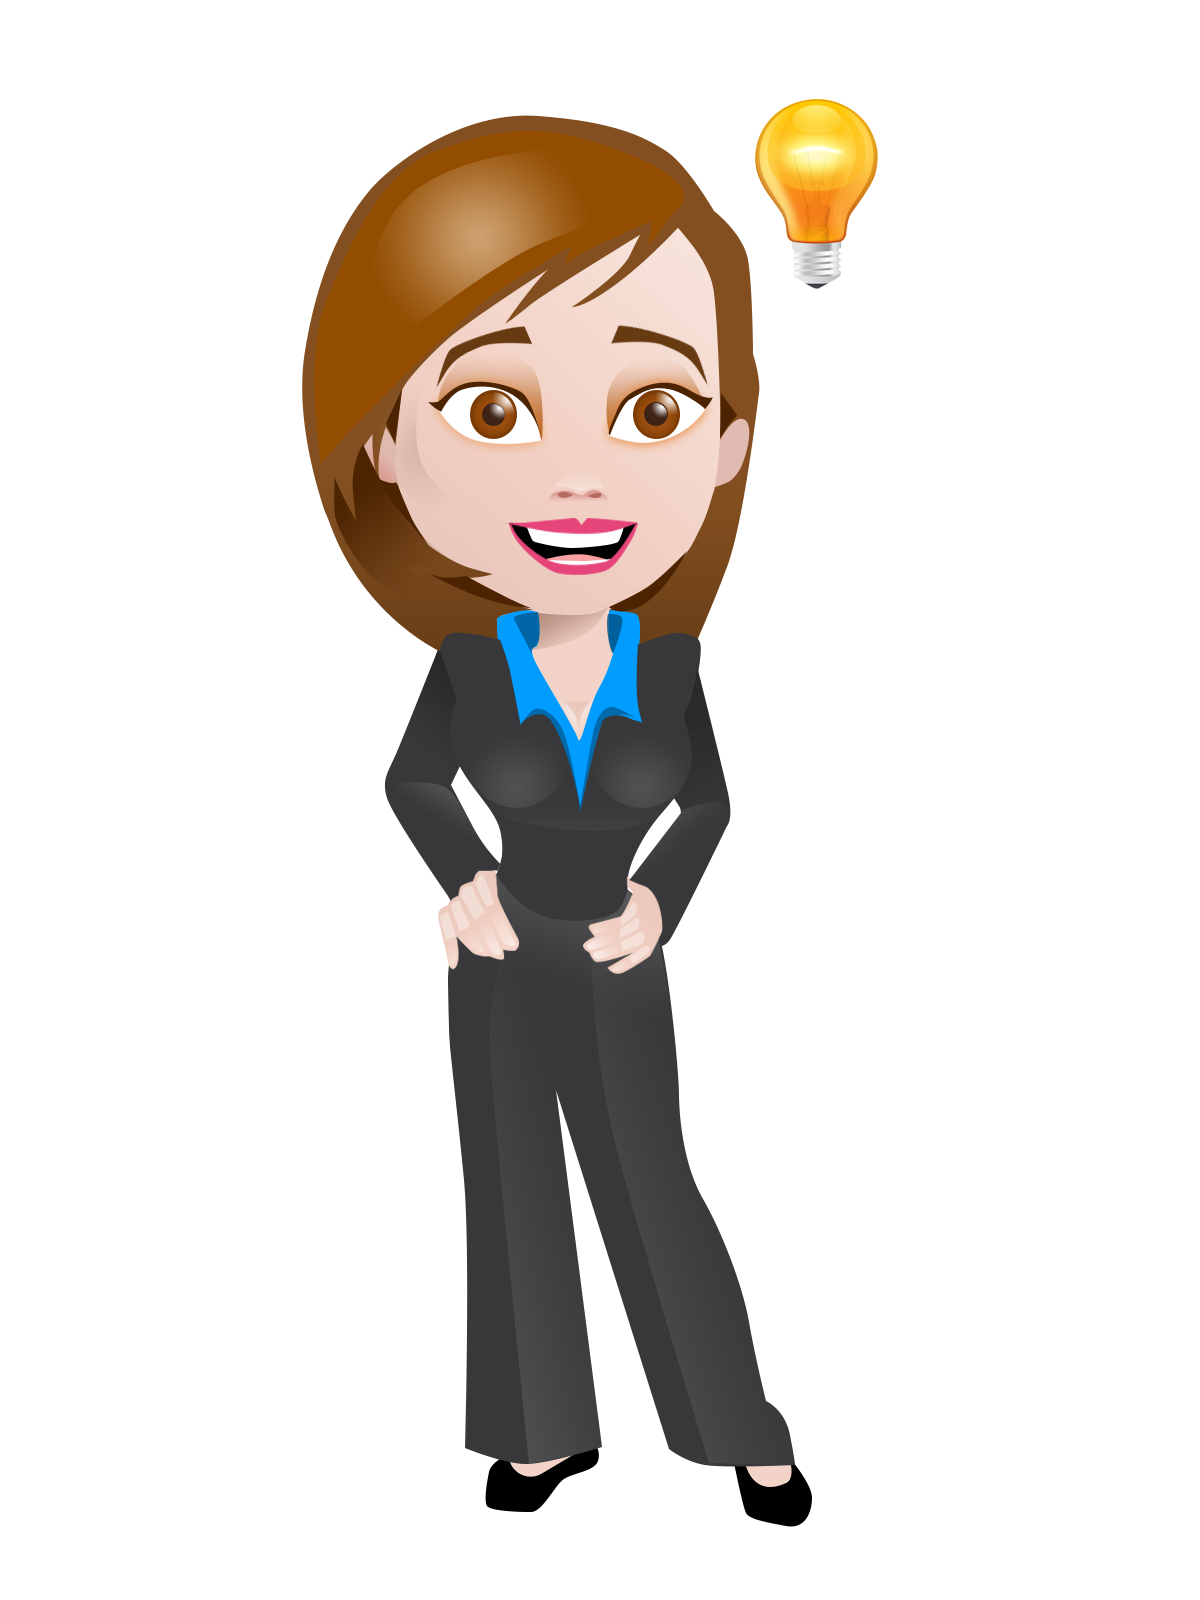 Happiness clipart business person. United states marketing advertising